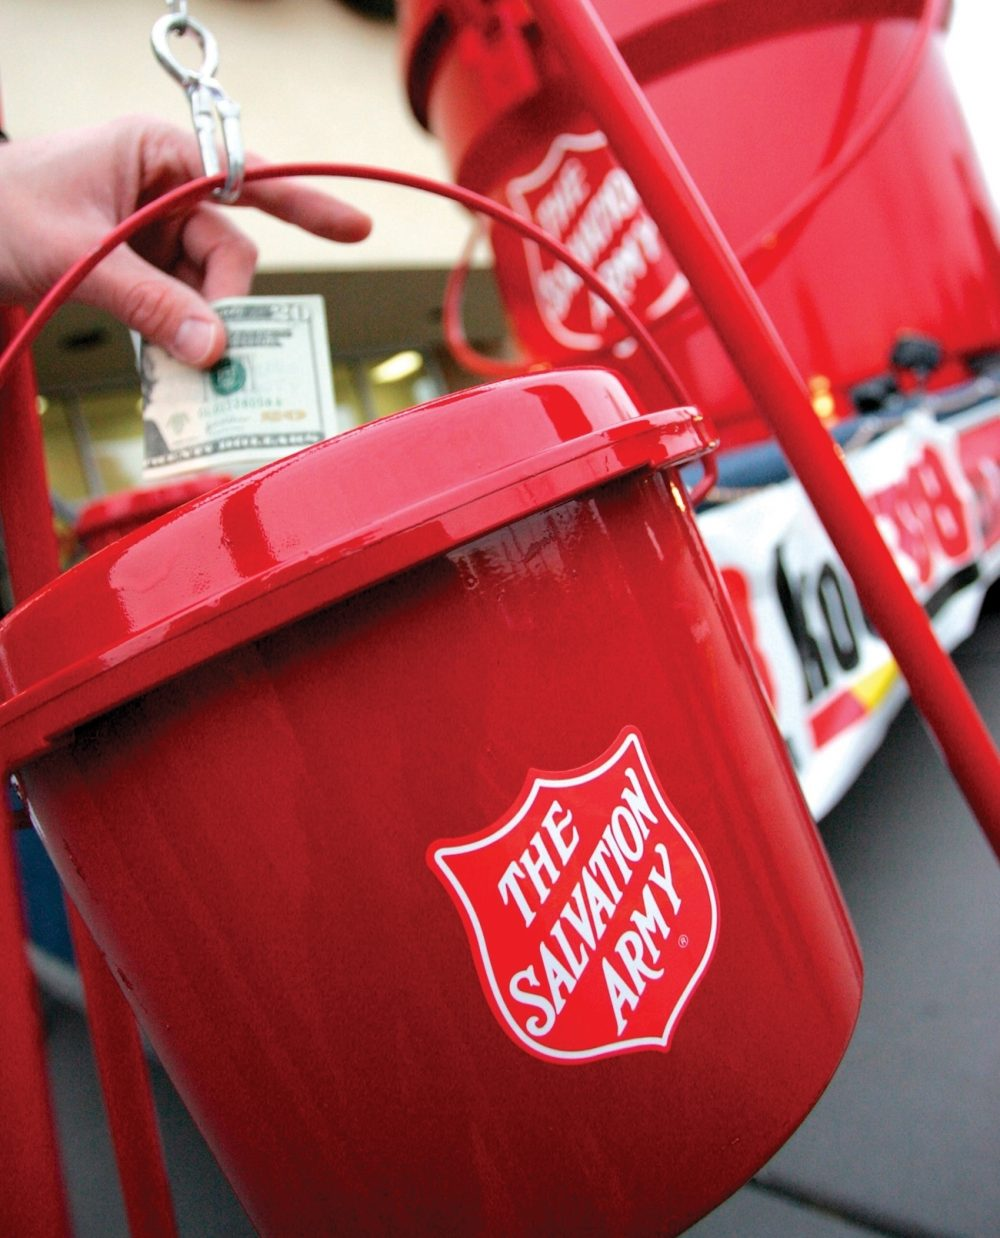 Contributions to The Salvation Army's Red Kettle Campaign enable the organization to continue its year-round efforts of helping those who would otherwise be forgotten.